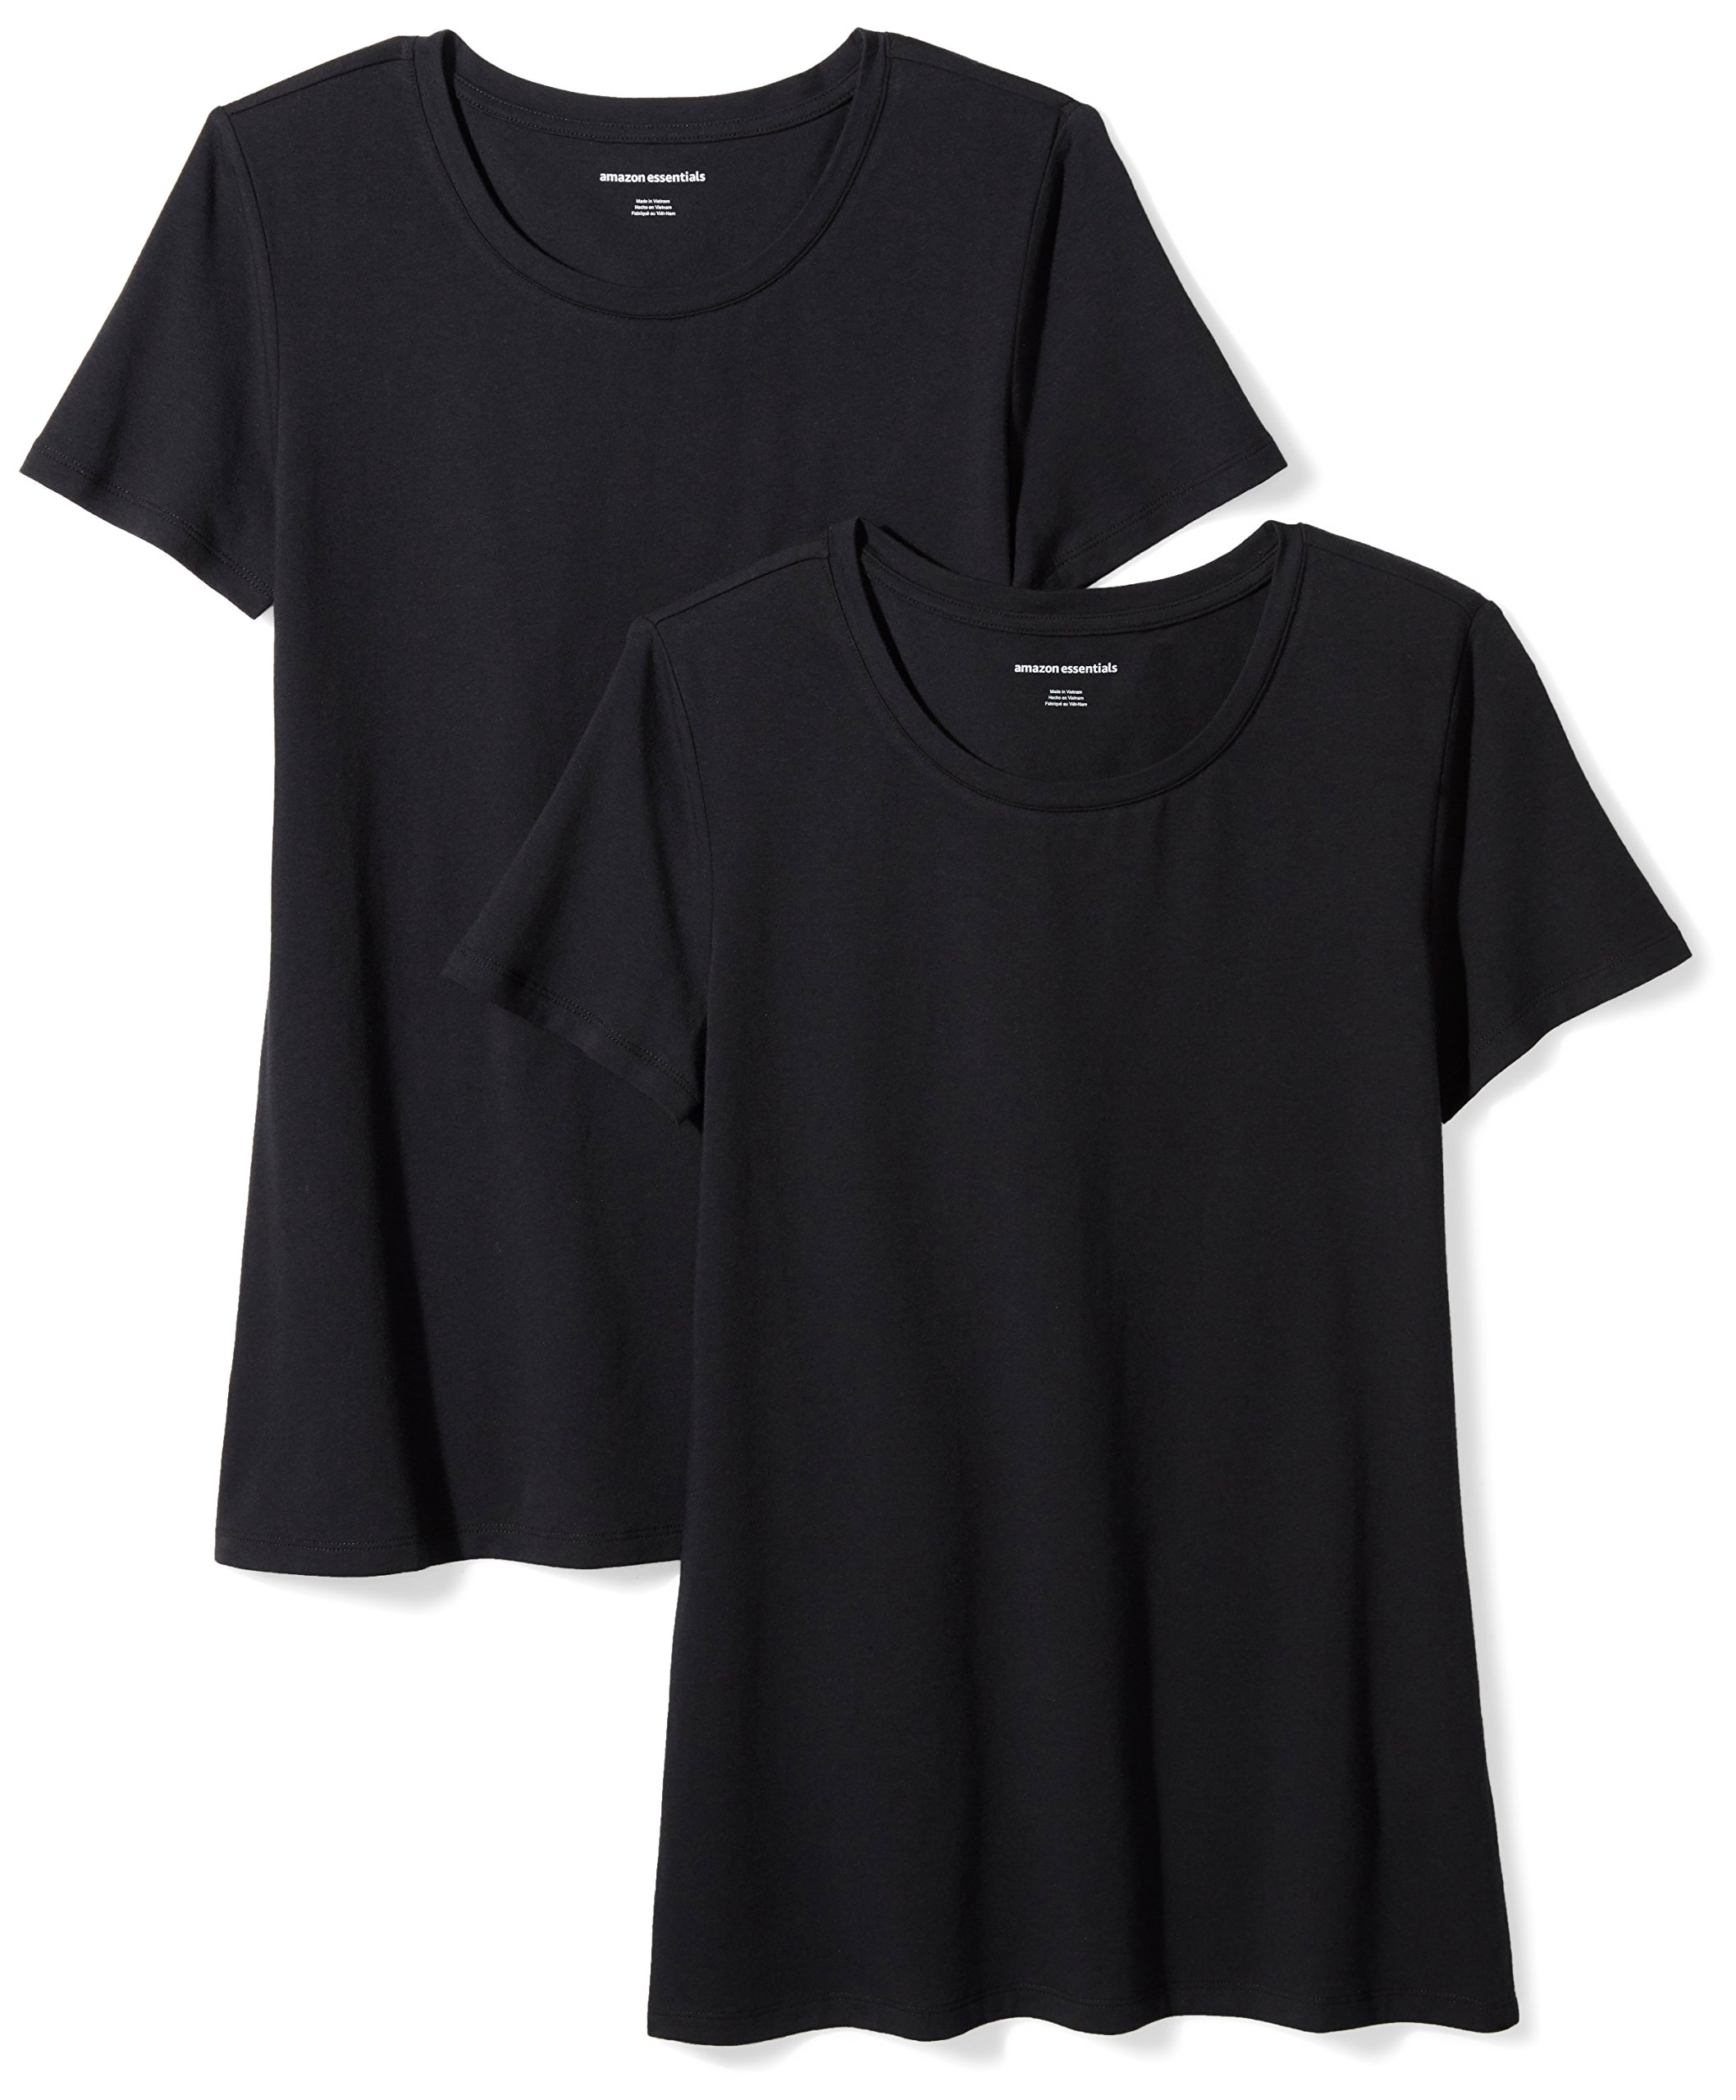 Amazon Essentials Women's 2-Pack Short-Sleeve Crewneck Solid T-Shirt, Black, X-Large